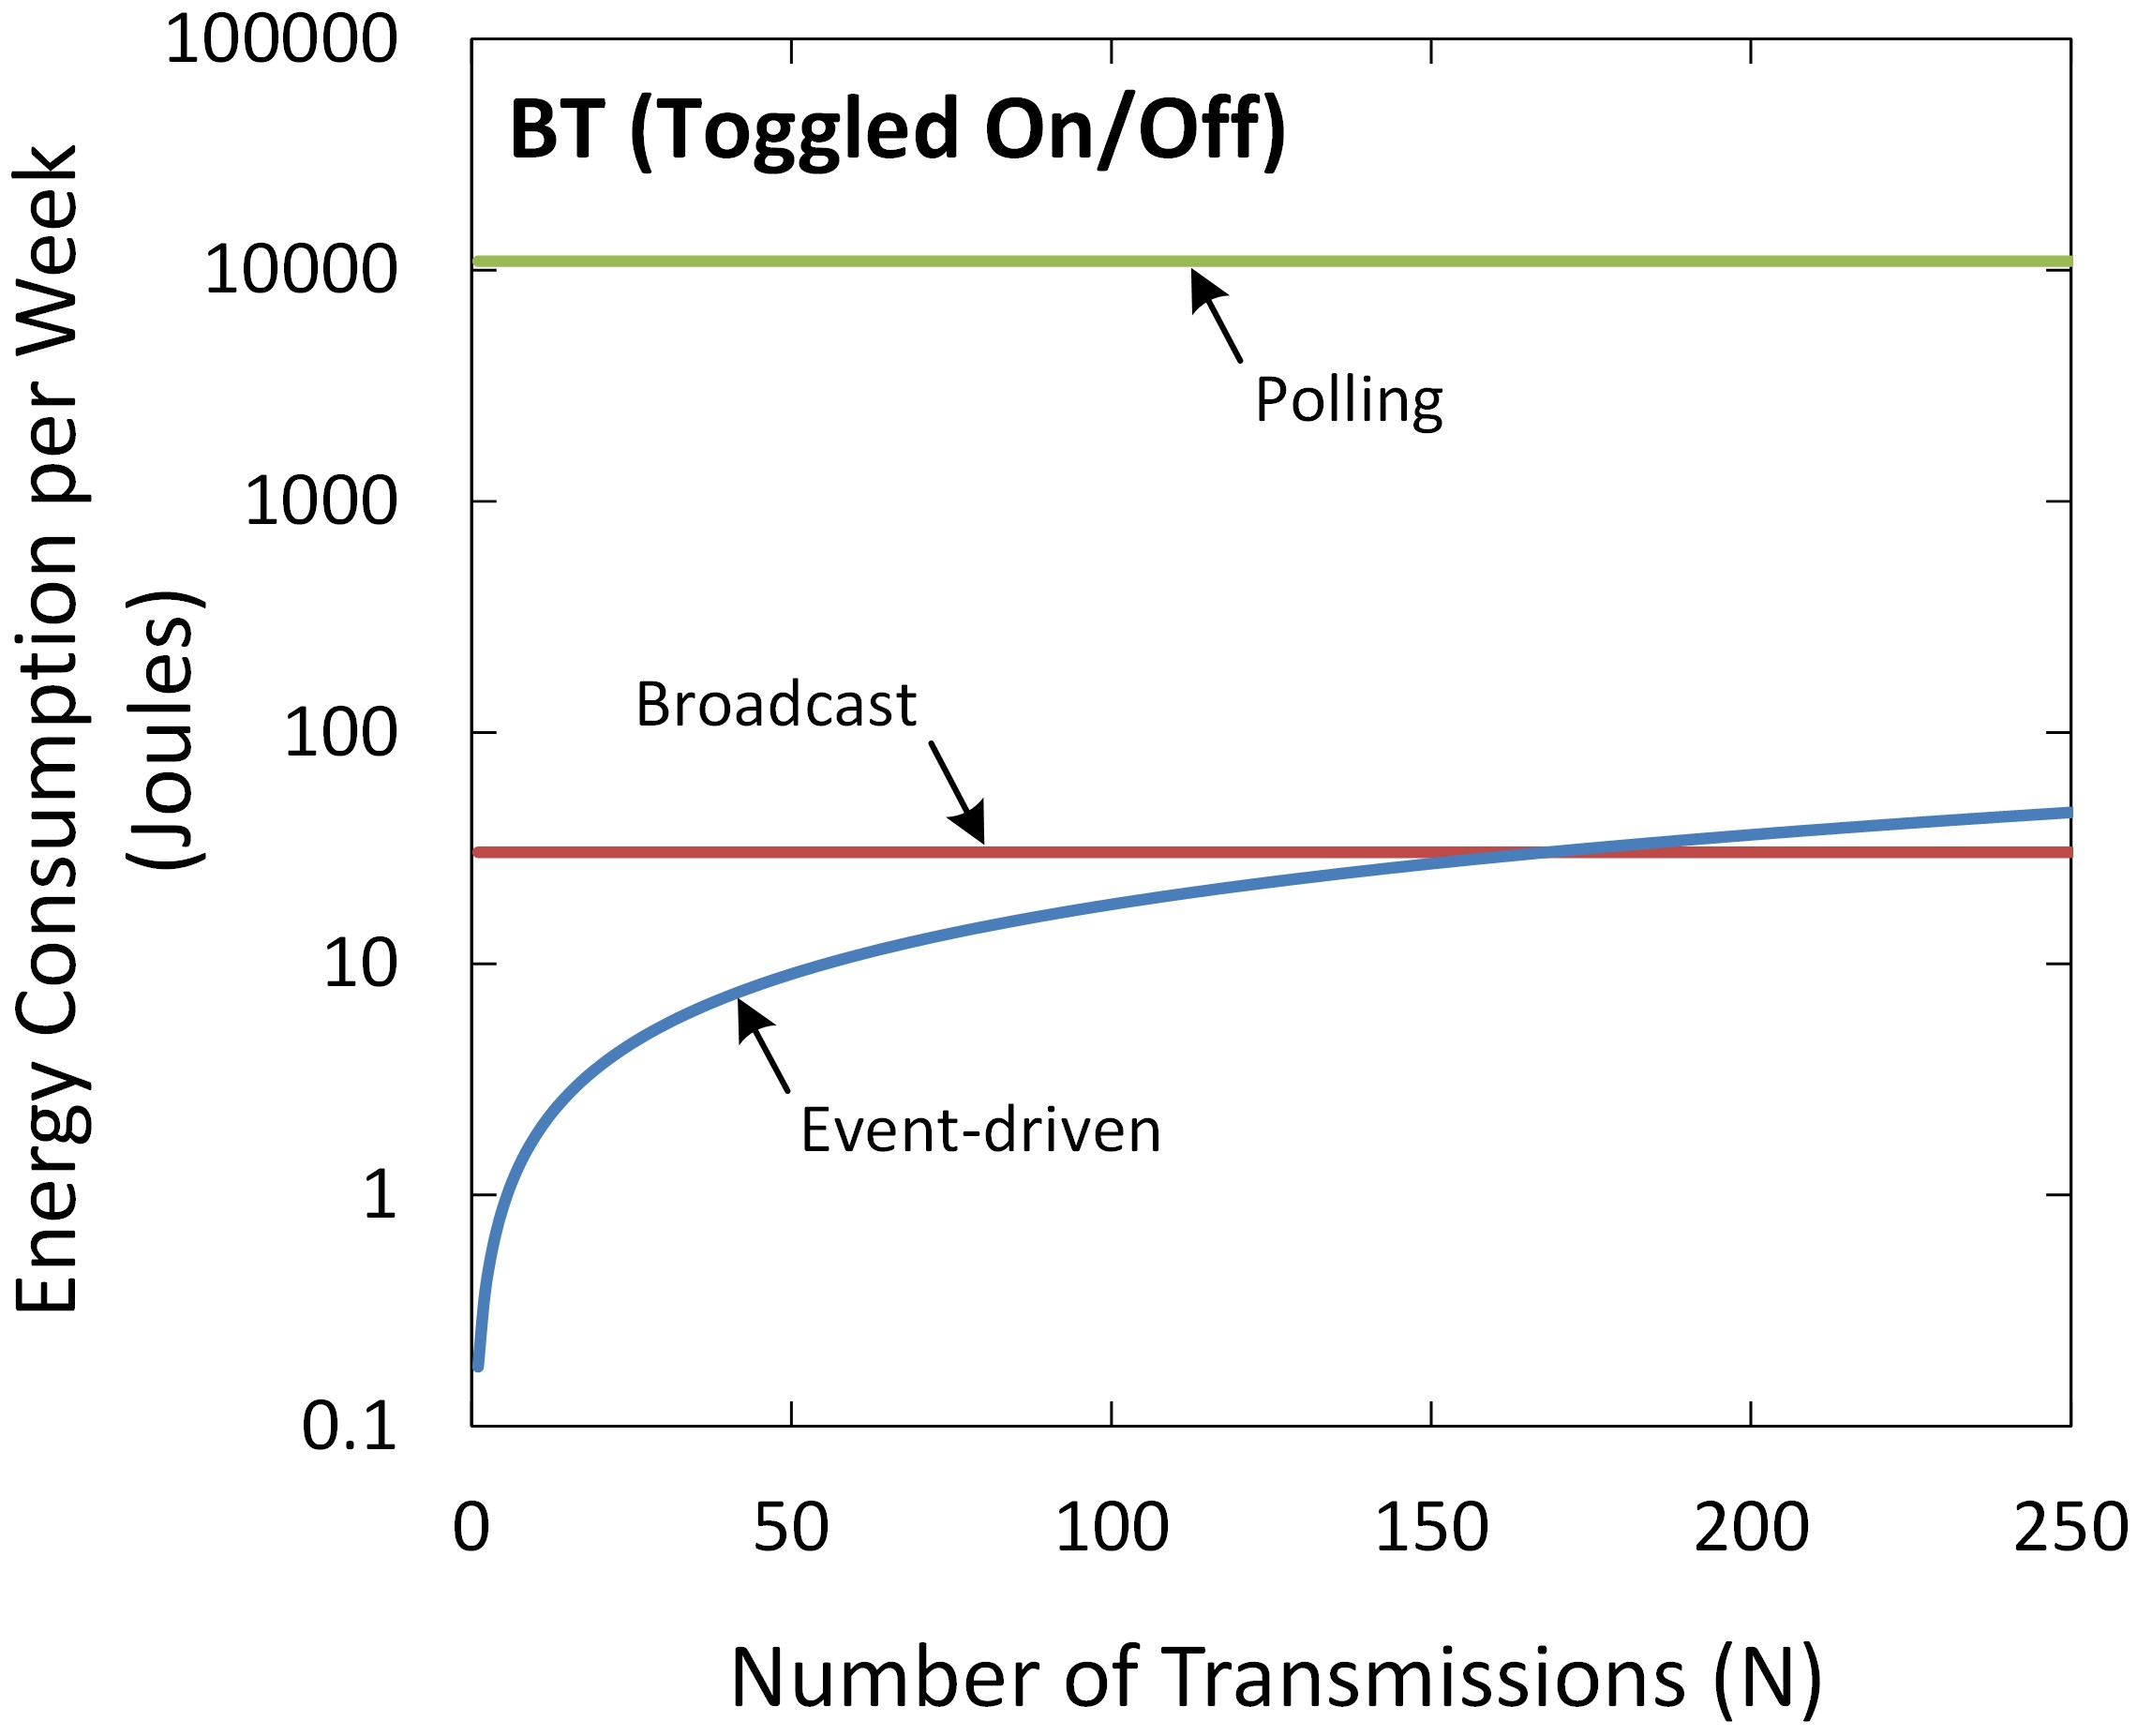 Figure 11. Energy consumption per week of the BT interface (toggled on/off).